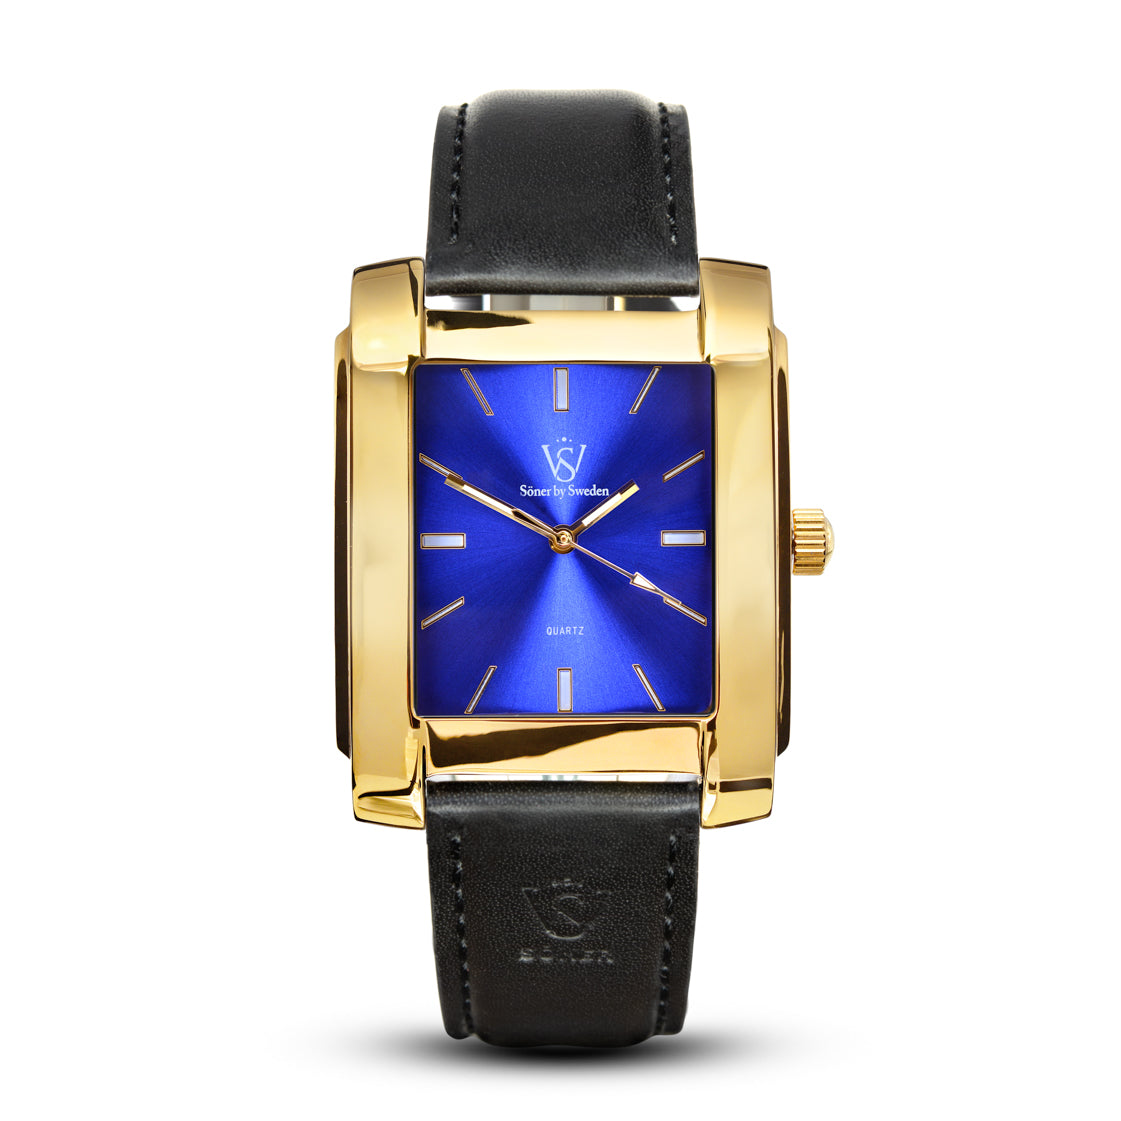 SQUARE MEN'S WATCH - LEGACY D Polished gold - Blue dial